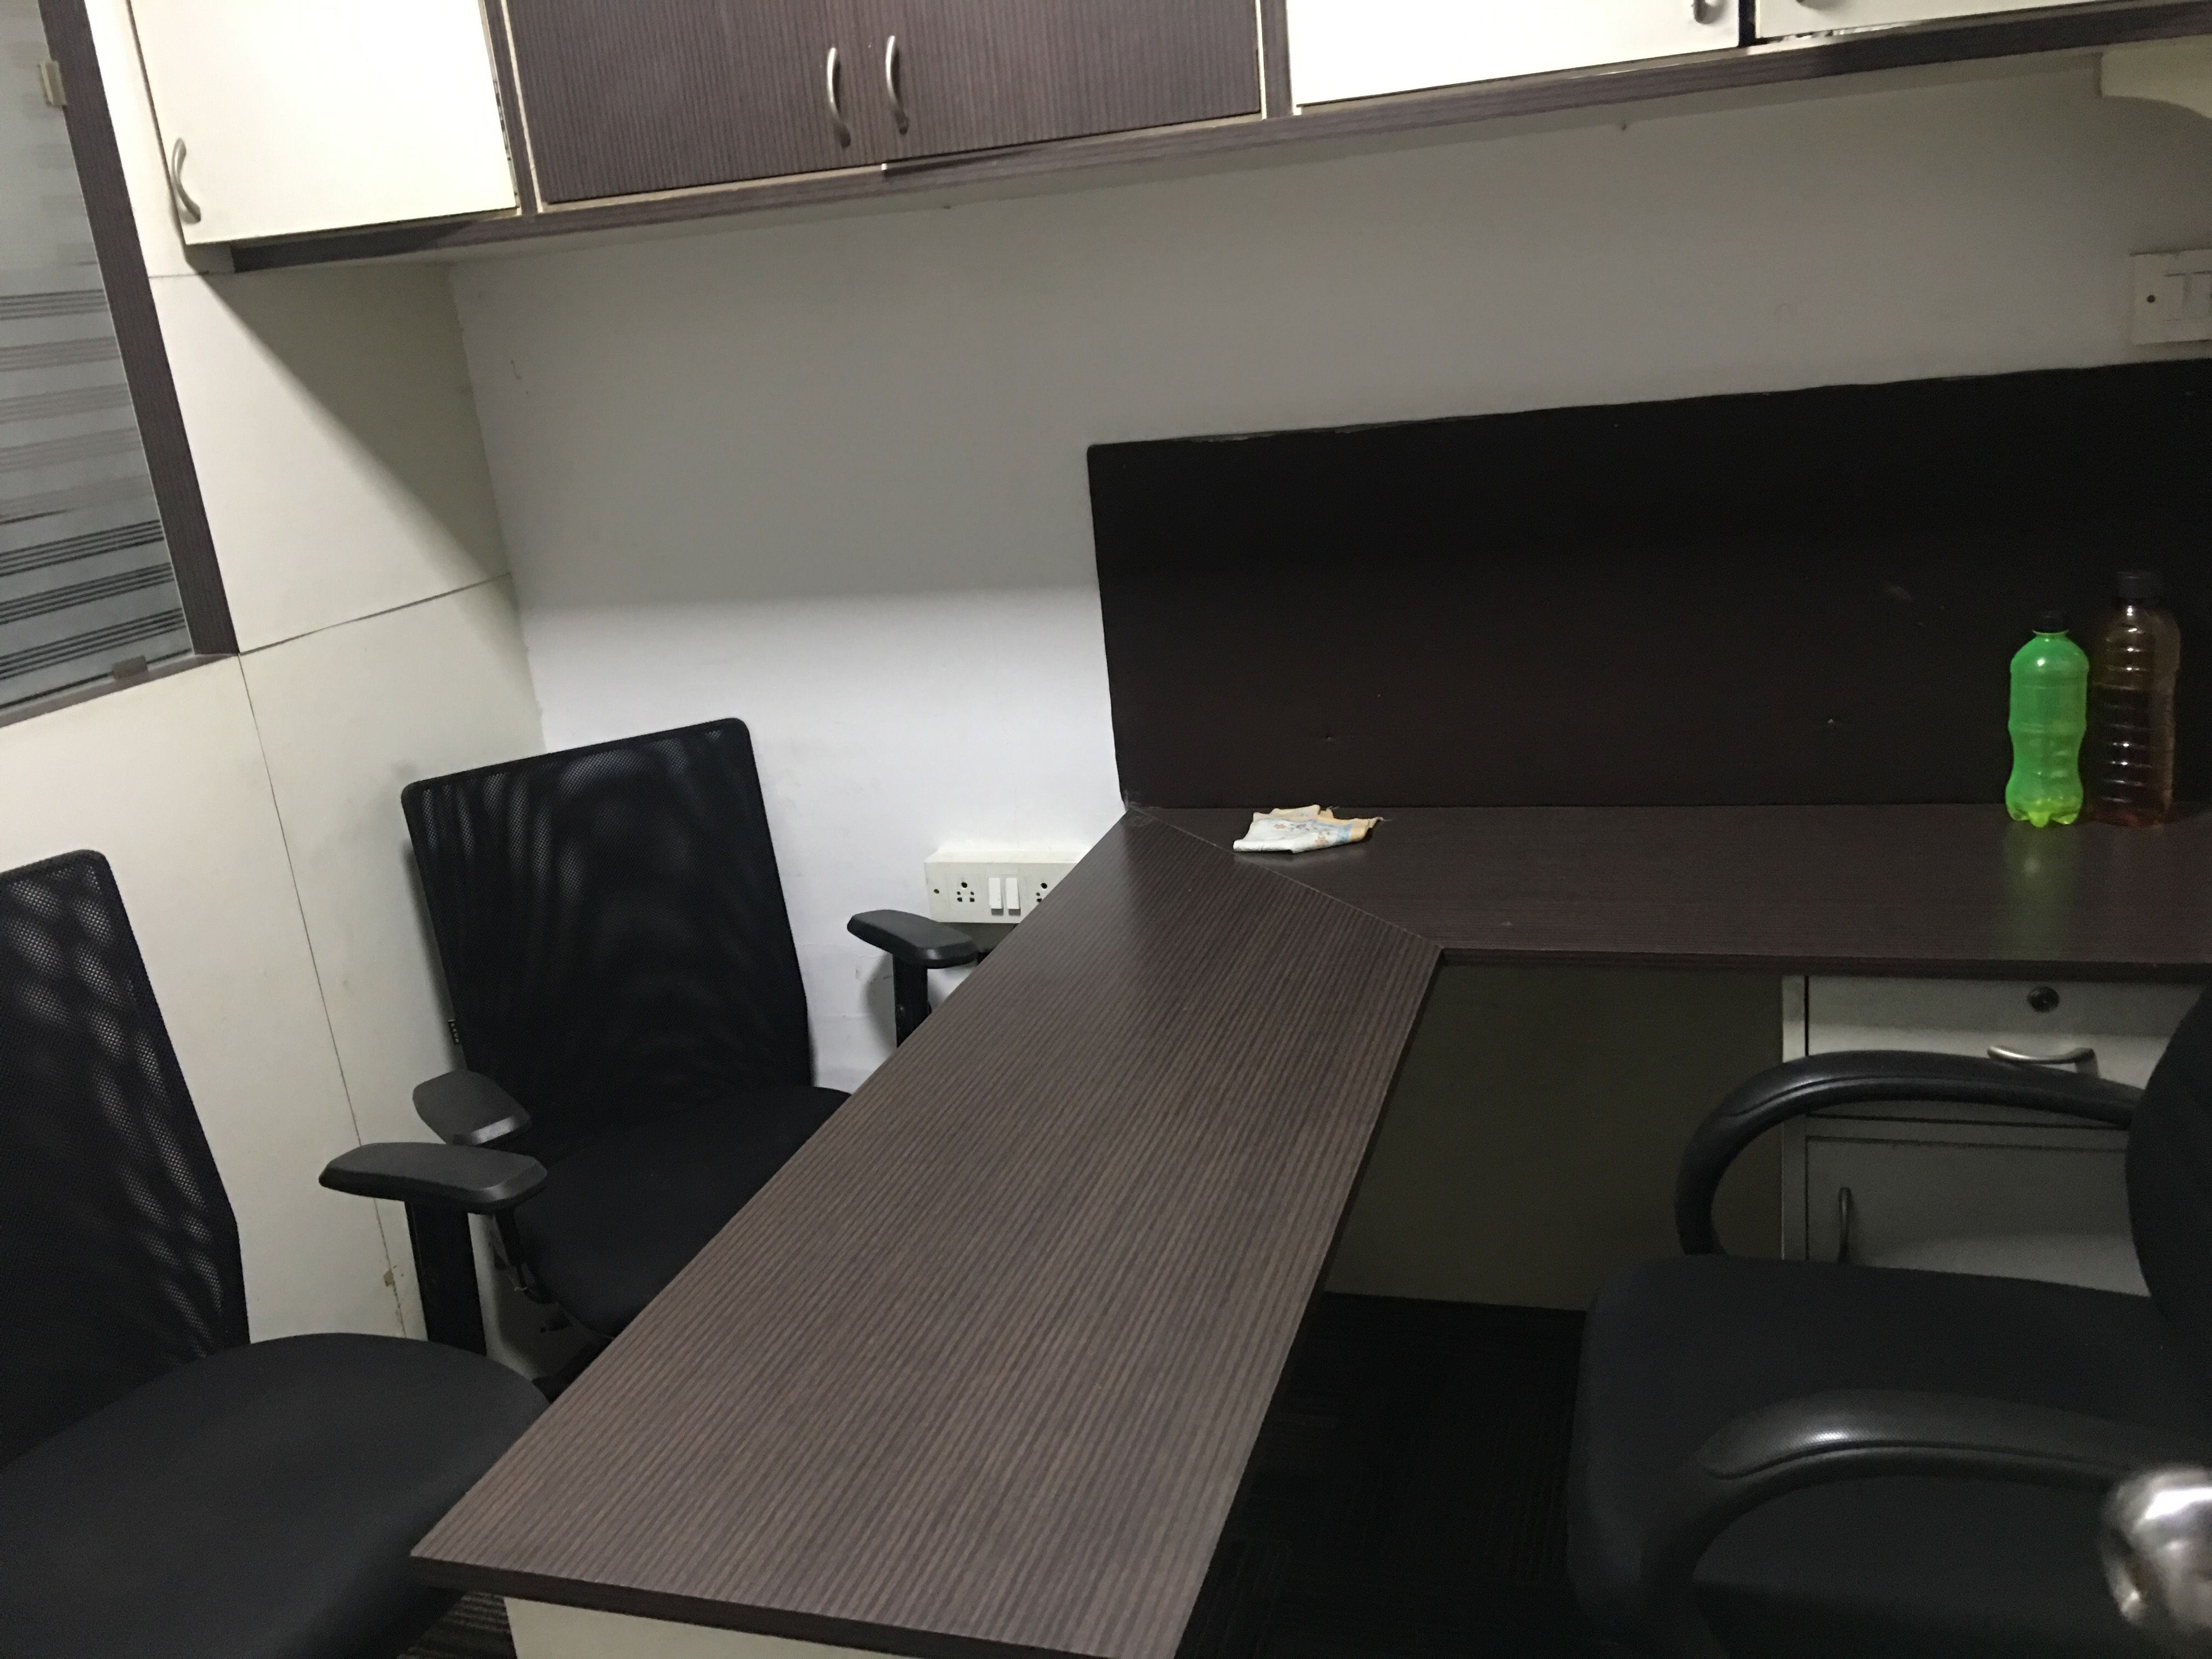 Get Best Office Space And Coworking Space In Bangalore For Rent Share Office Solutions Provide Virtual Coworking Space Small Space Office Coworking